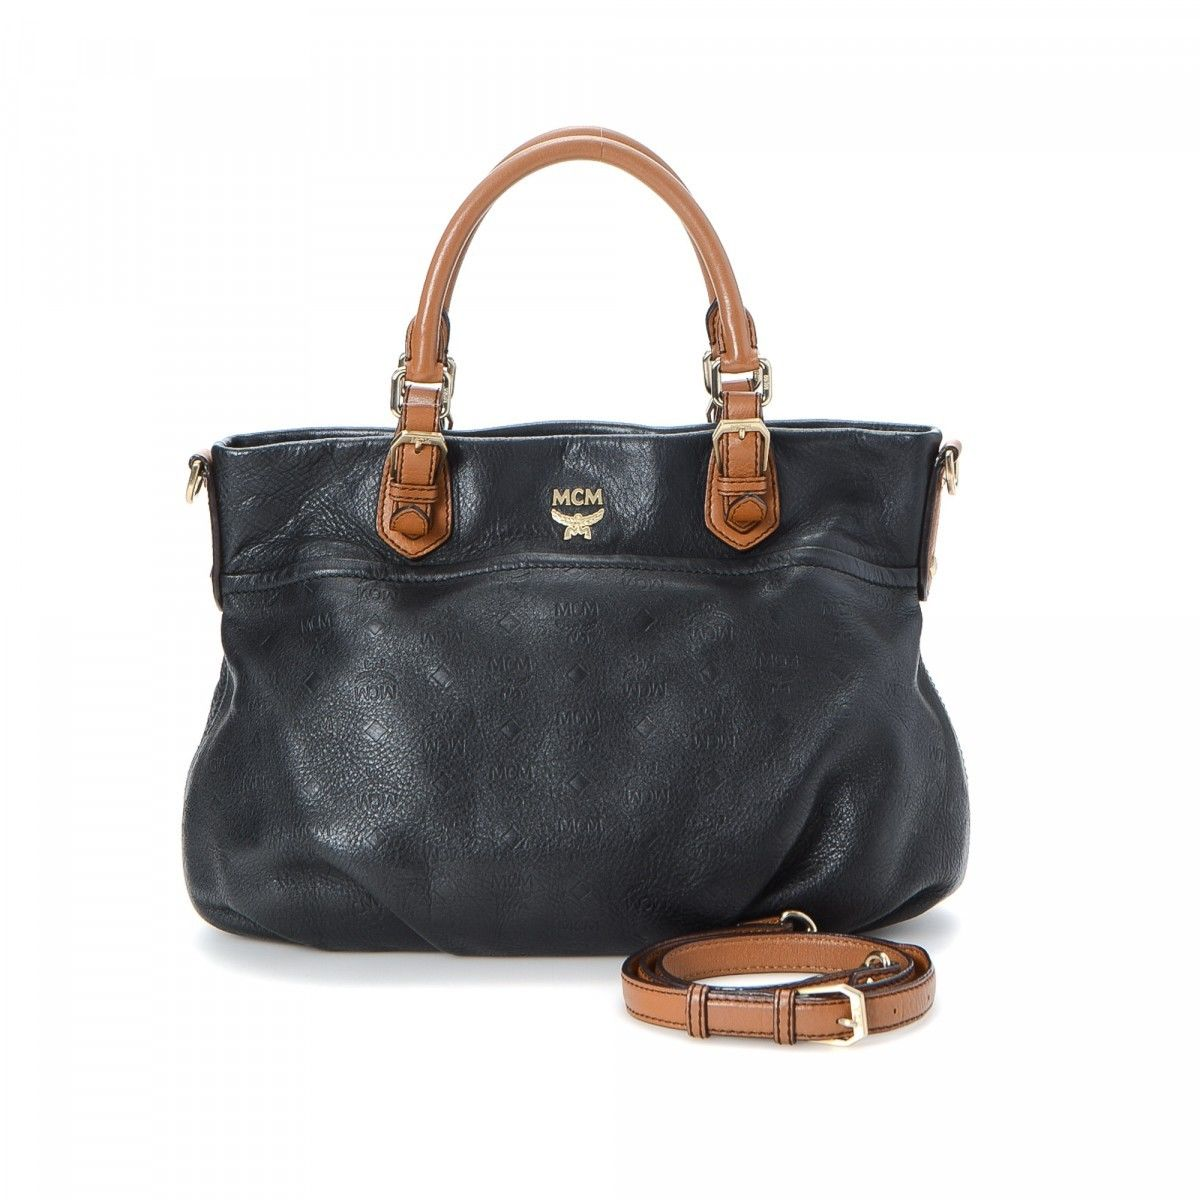 MCM Pre-owned - Leather bag 6qMRvcxz